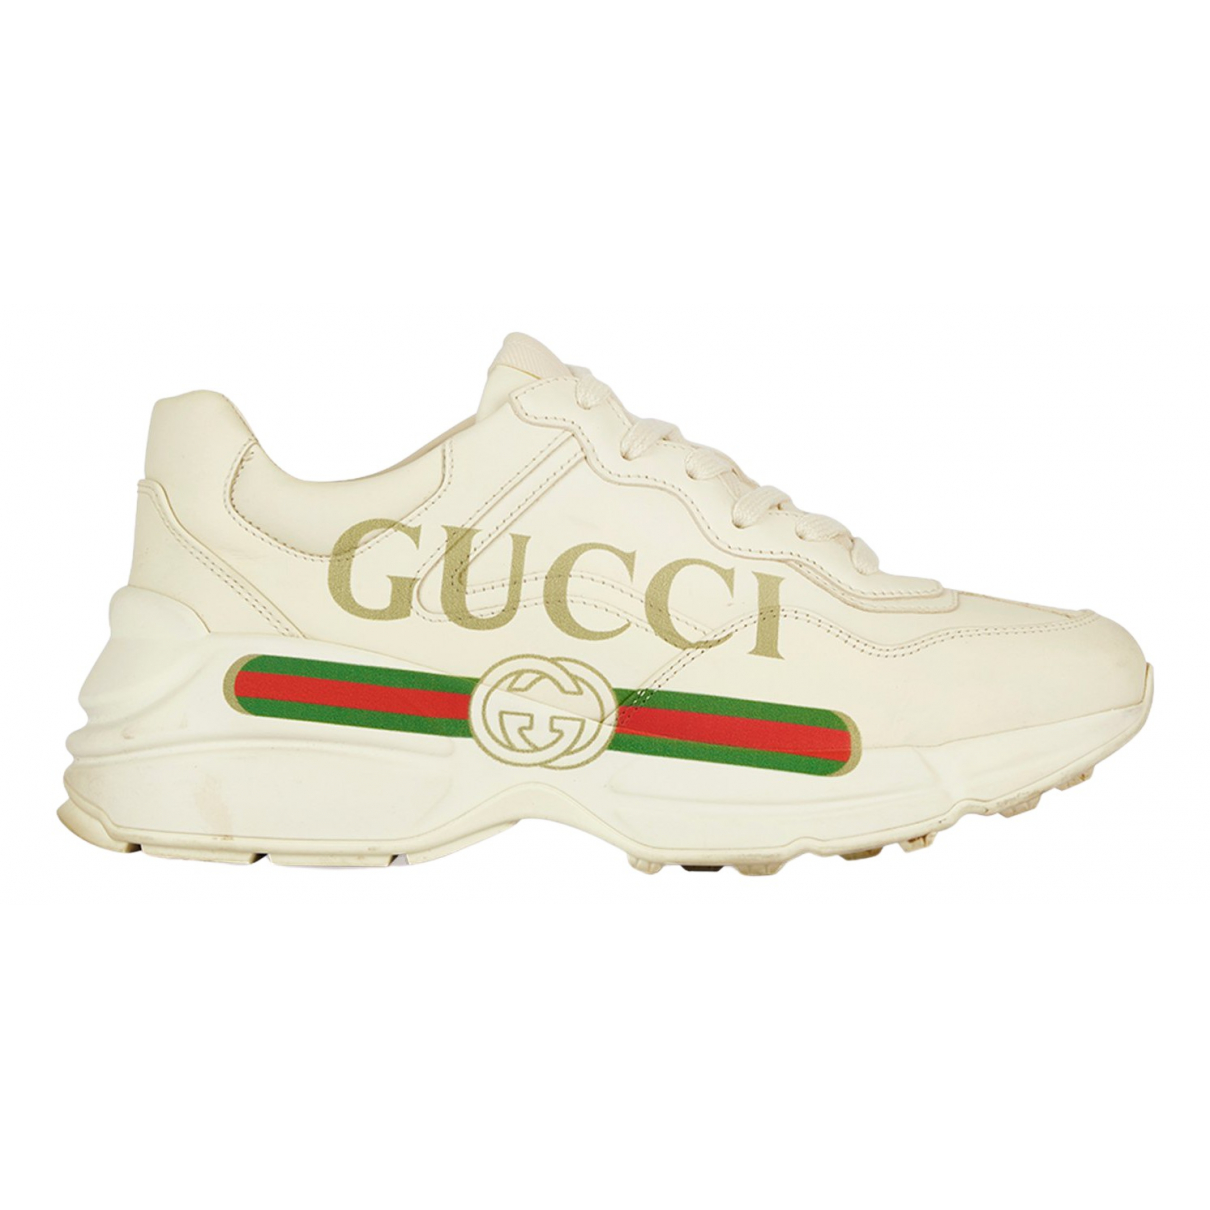 Gucci Rhyton Beige Leather Trainers for Women 5.5 UK